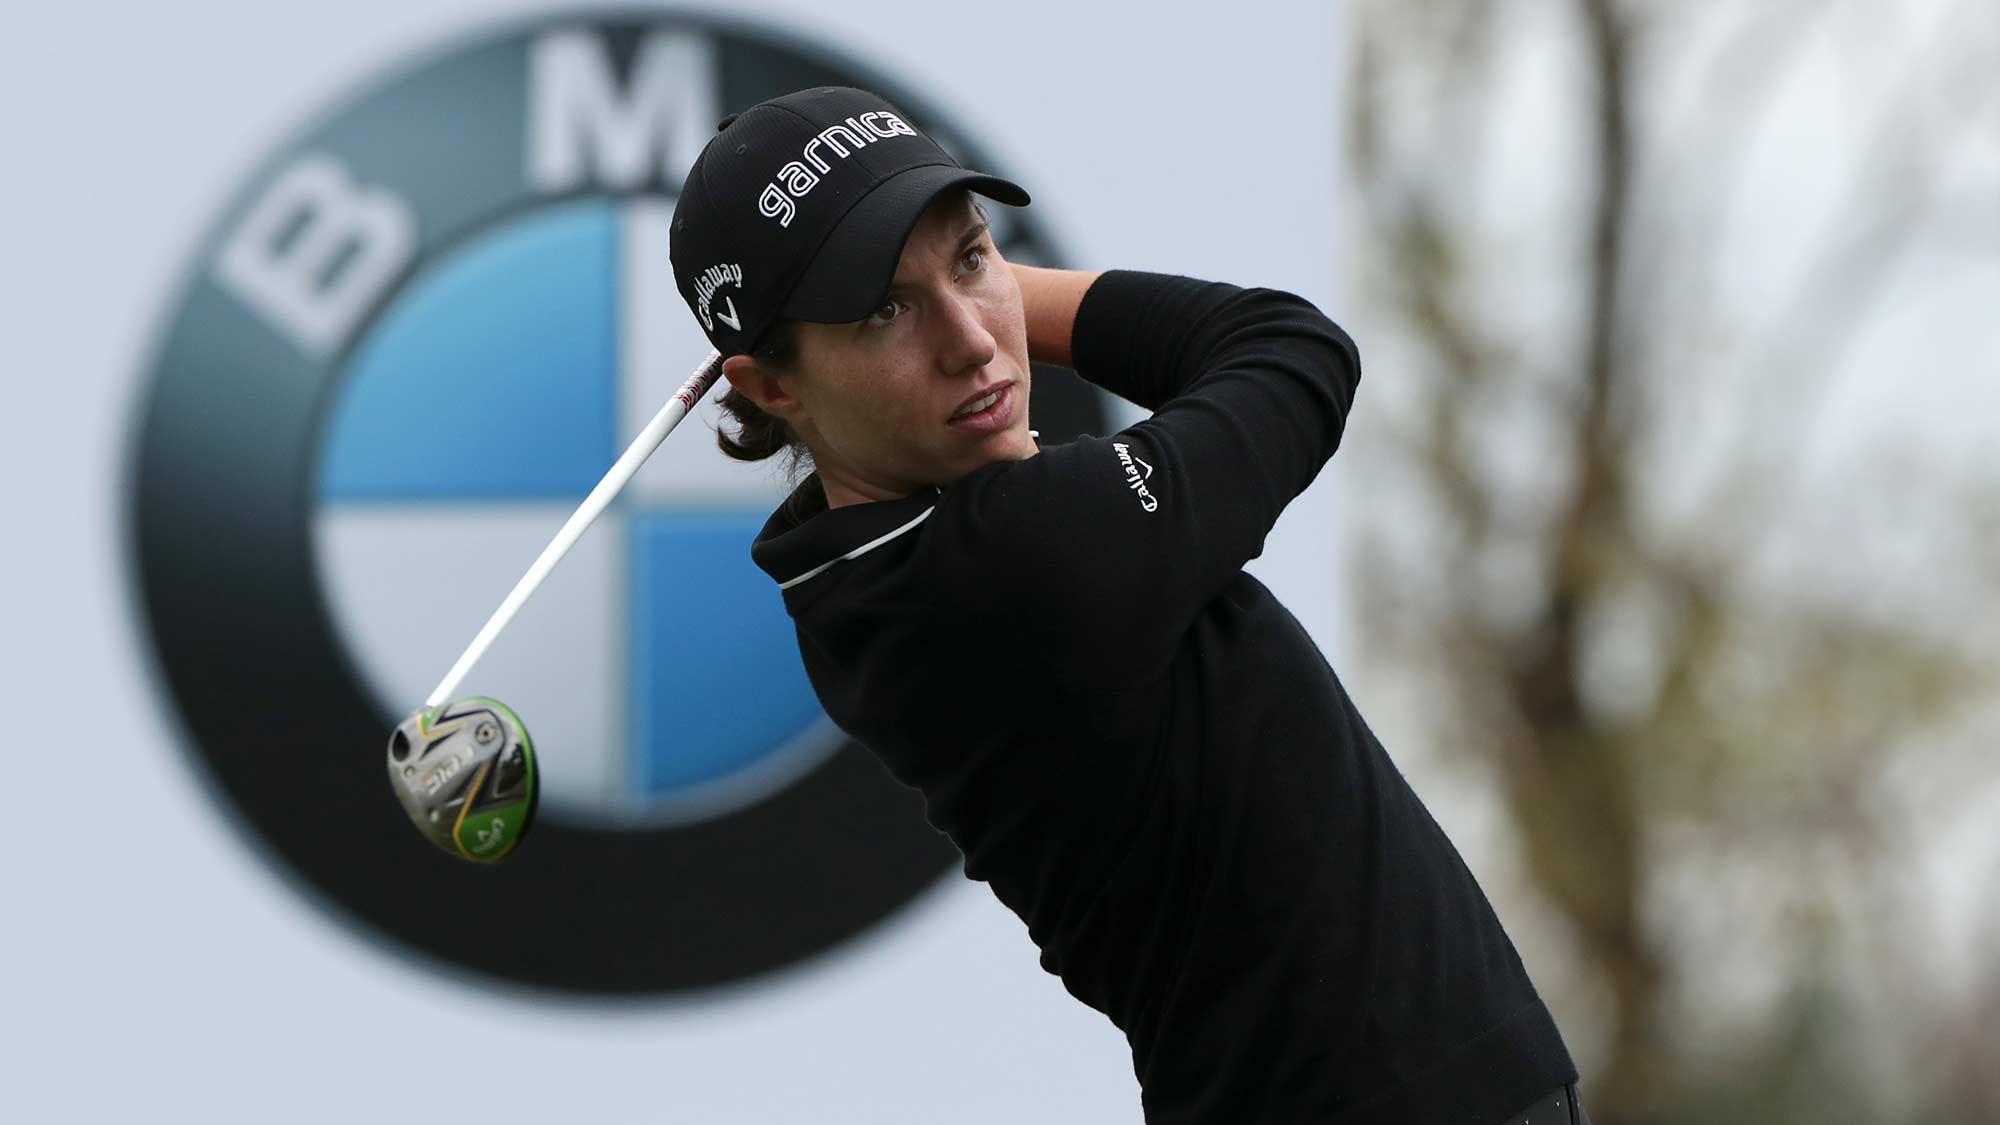 Carlota Ciganda tees off at the 2nd round of the BMW